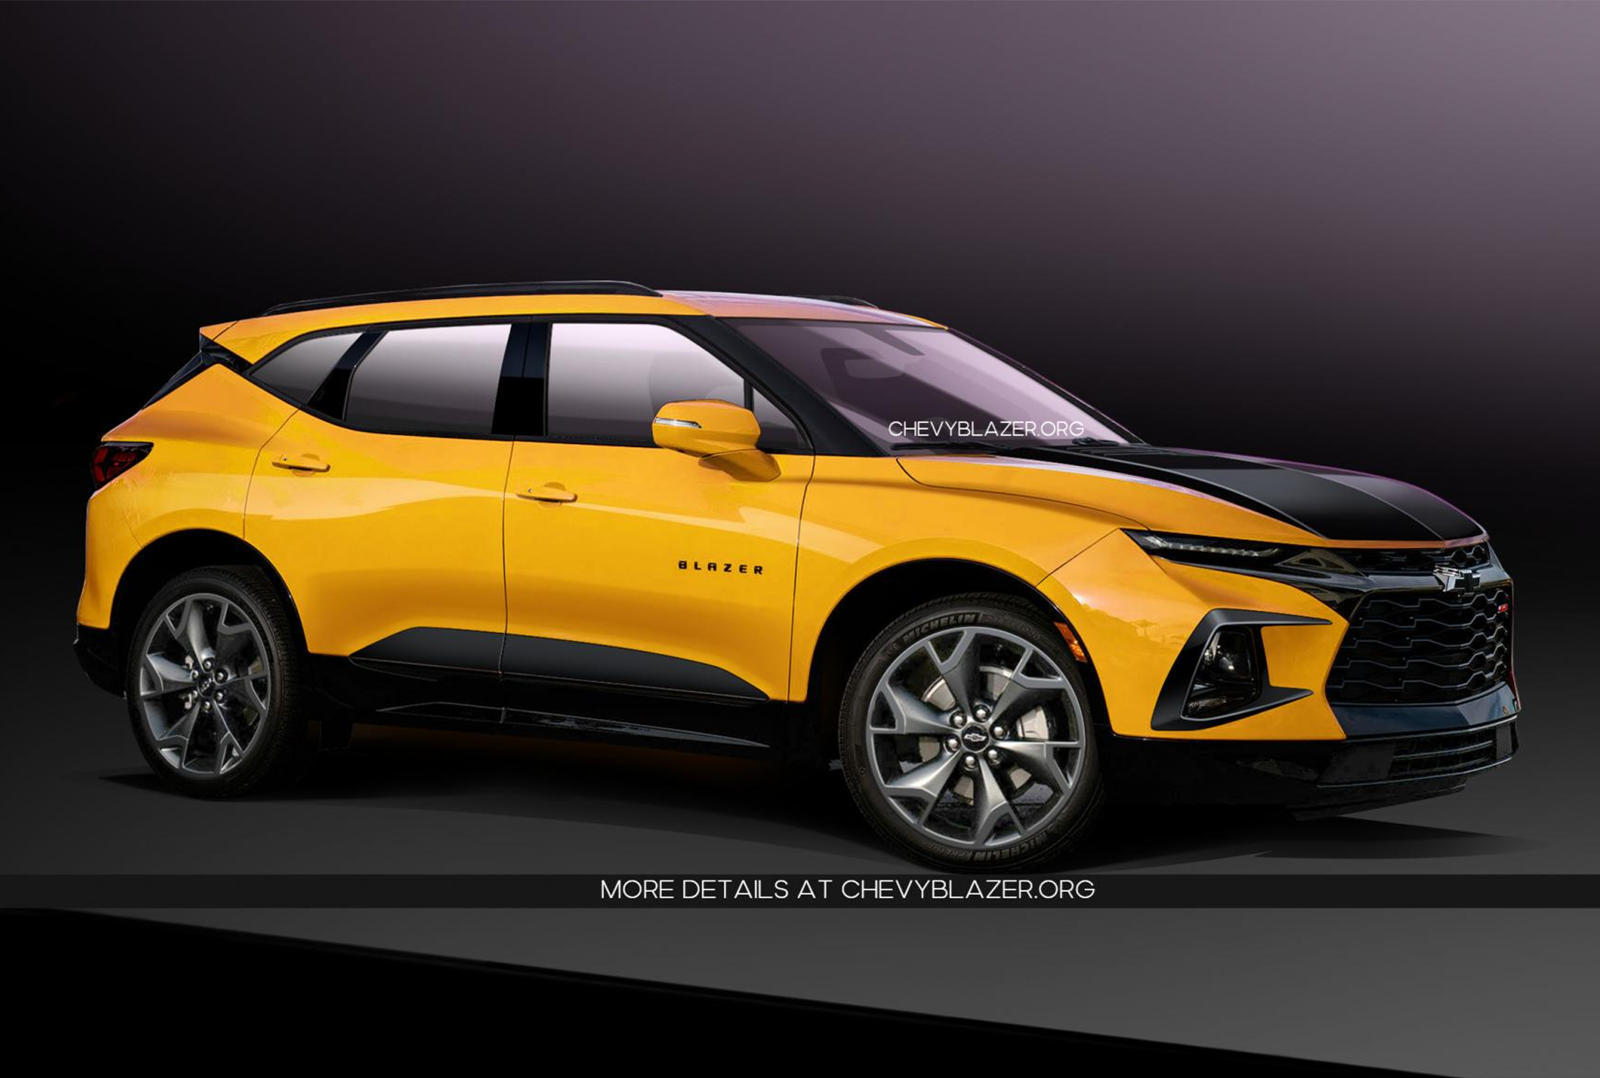 Chevrolet Blazer SS To Debut At New York With 400 HP | CarBuzz